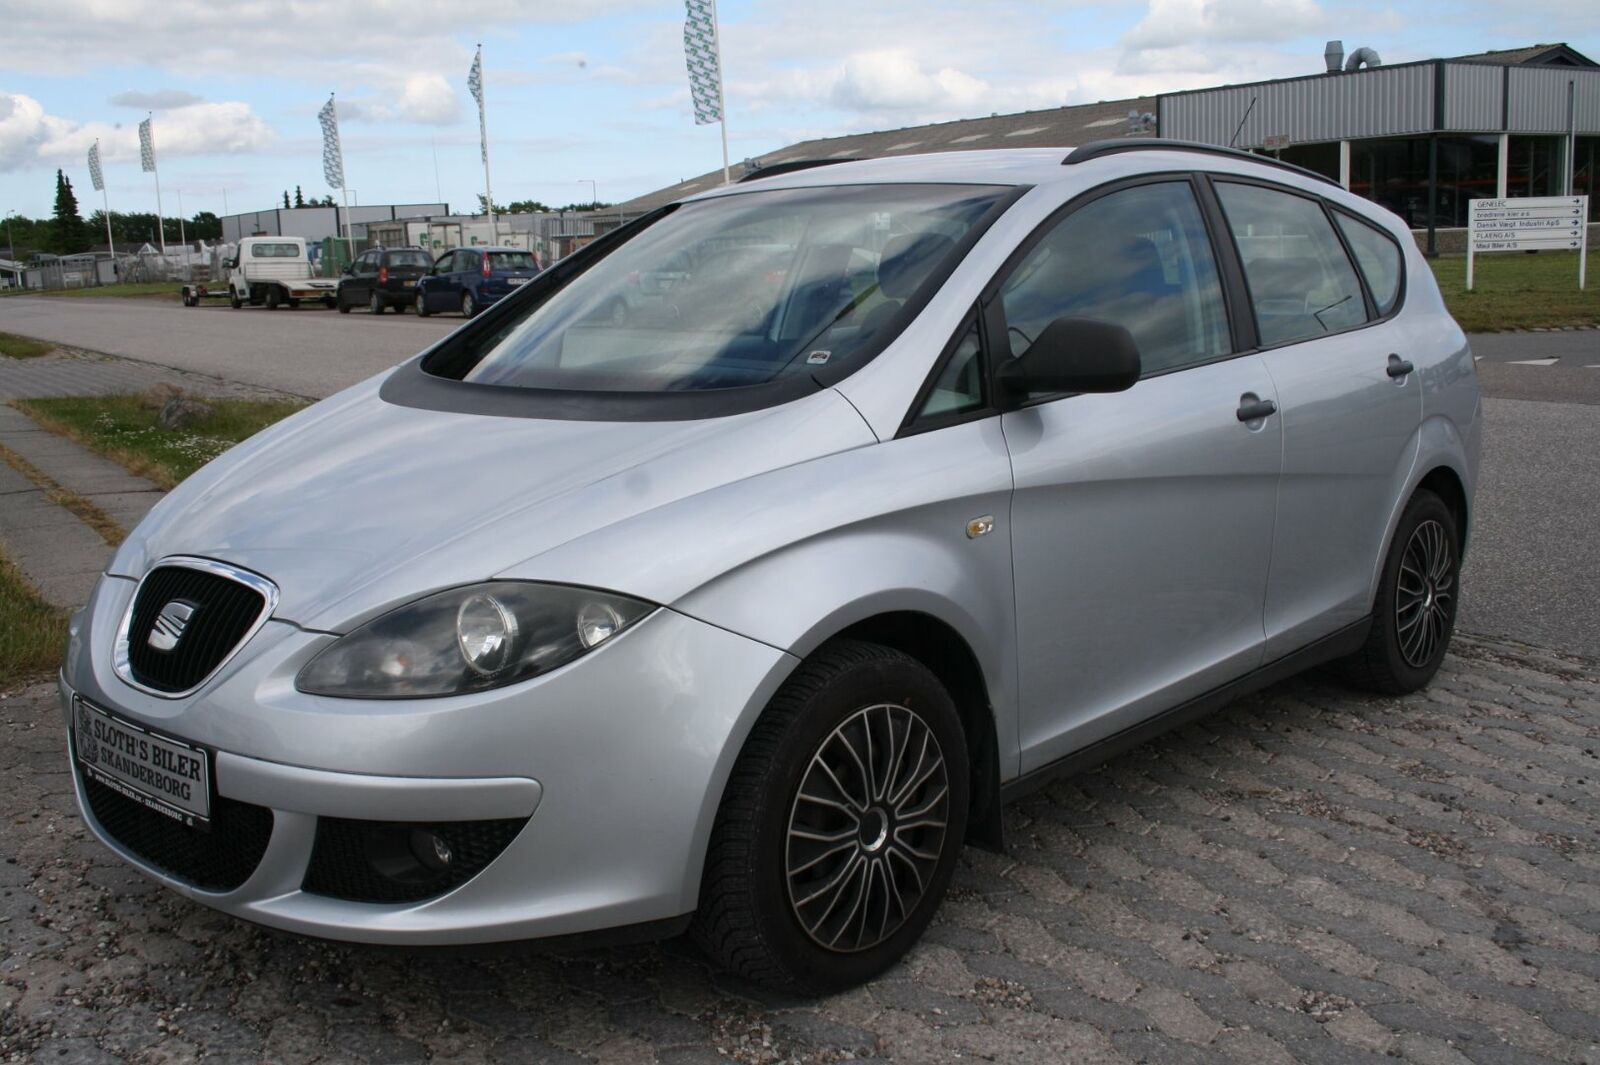 Seat Altea XL 1,6 Reference 5d